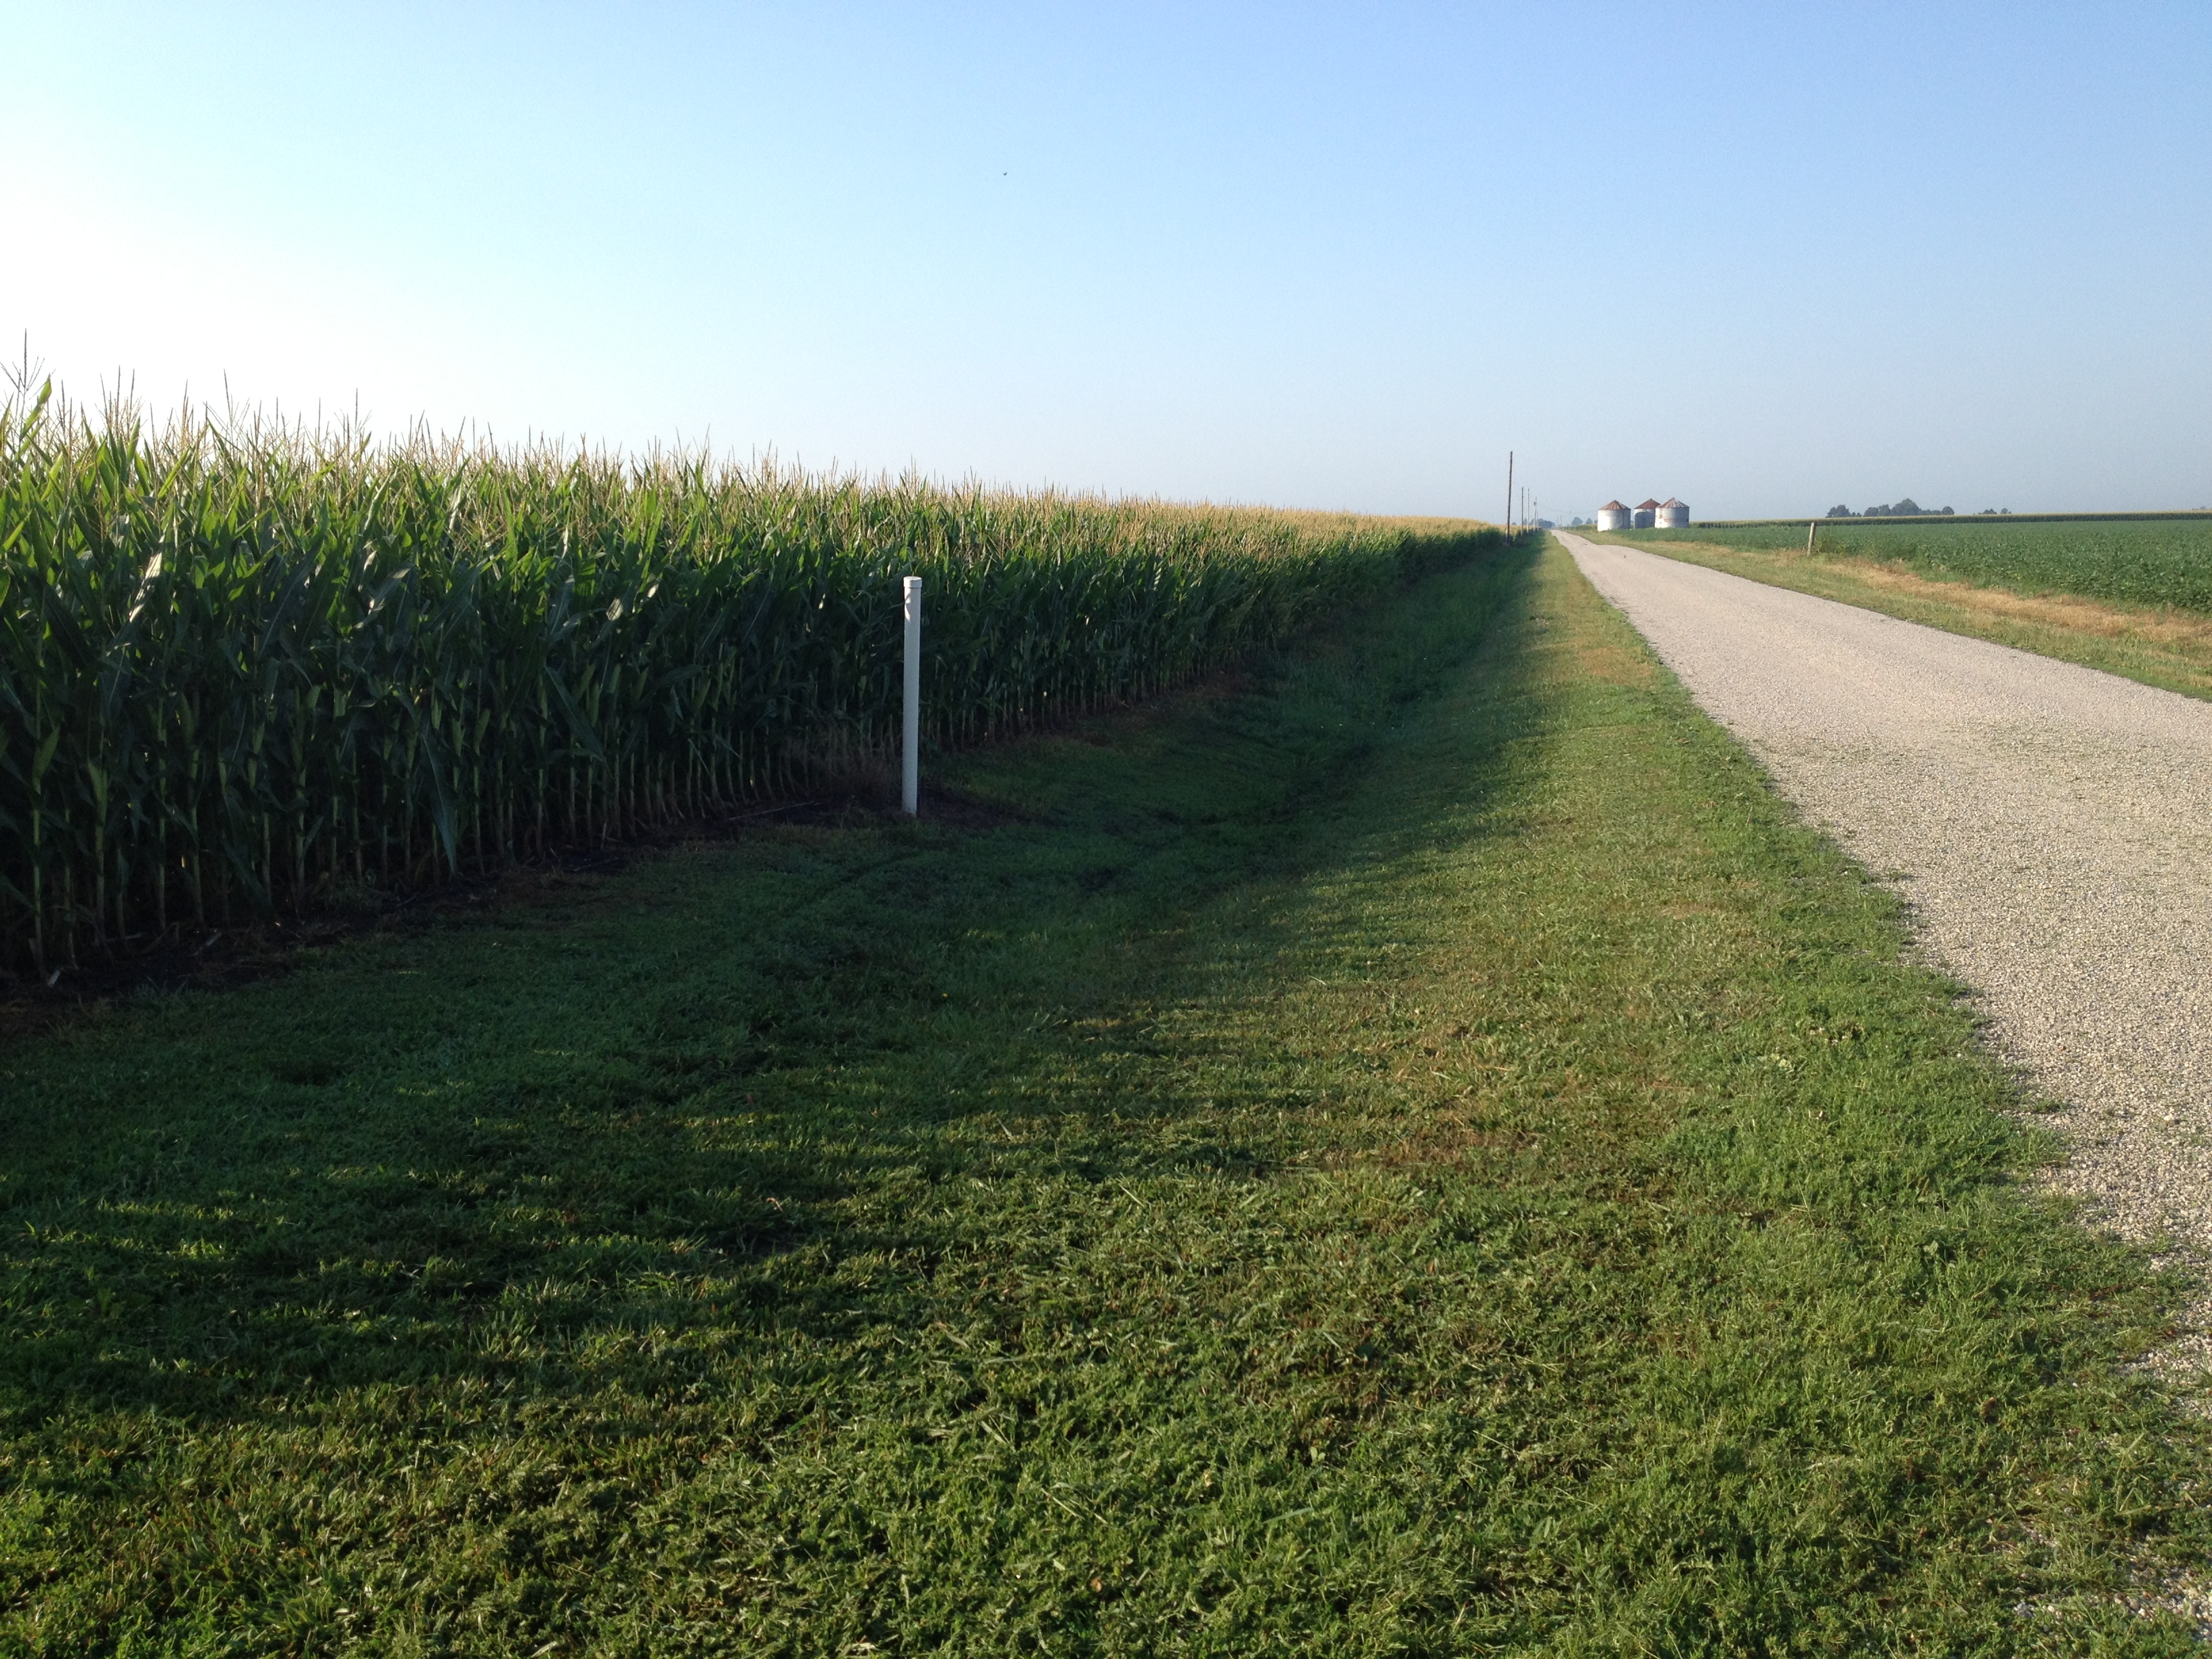 Picture of corn on Wallbaum farm